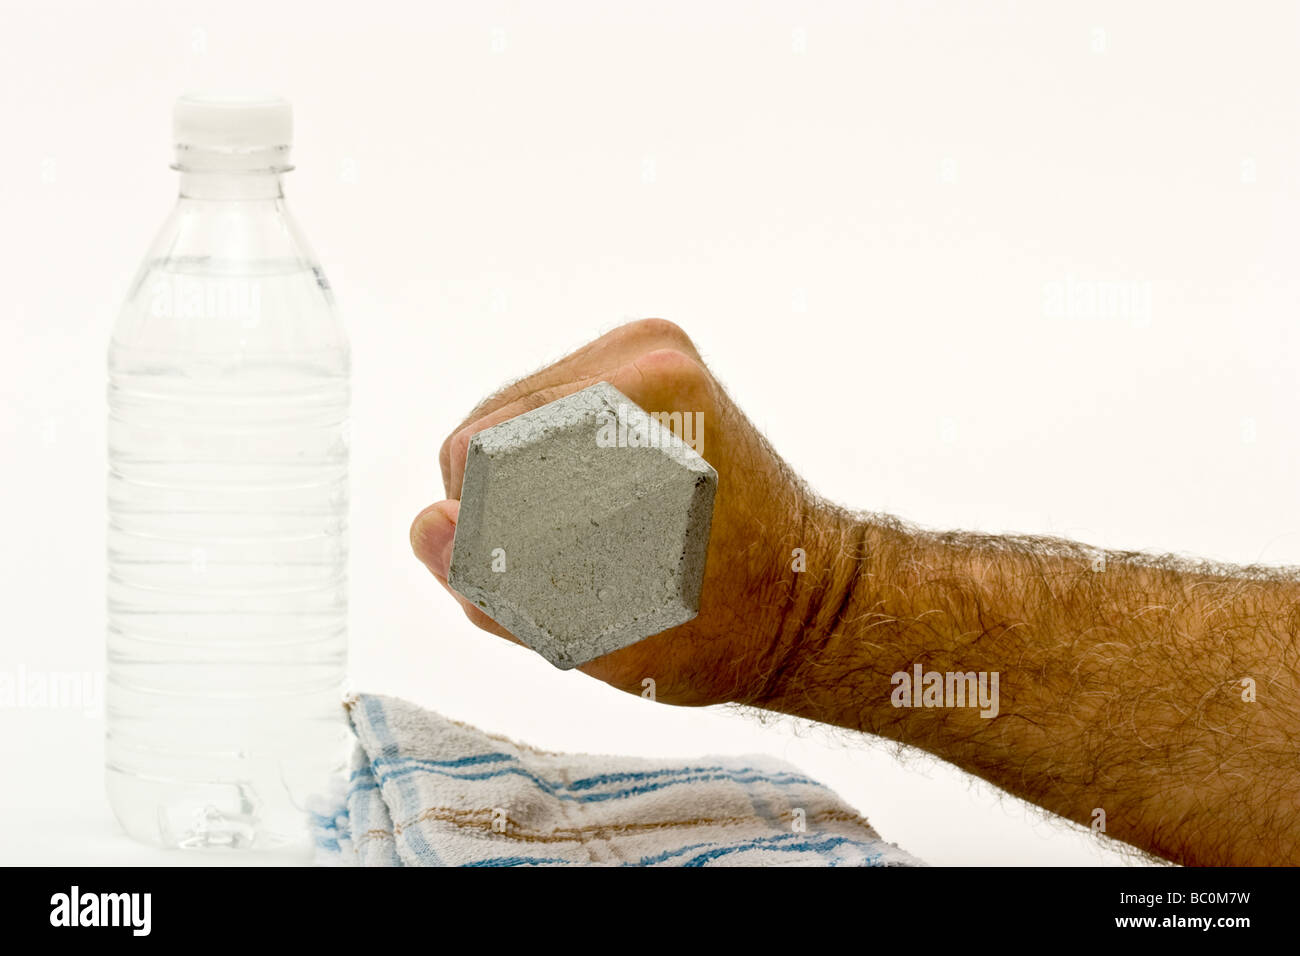 Man's hand holding a dumbbell over a sweat towel next to a bottle of water - Stock Image